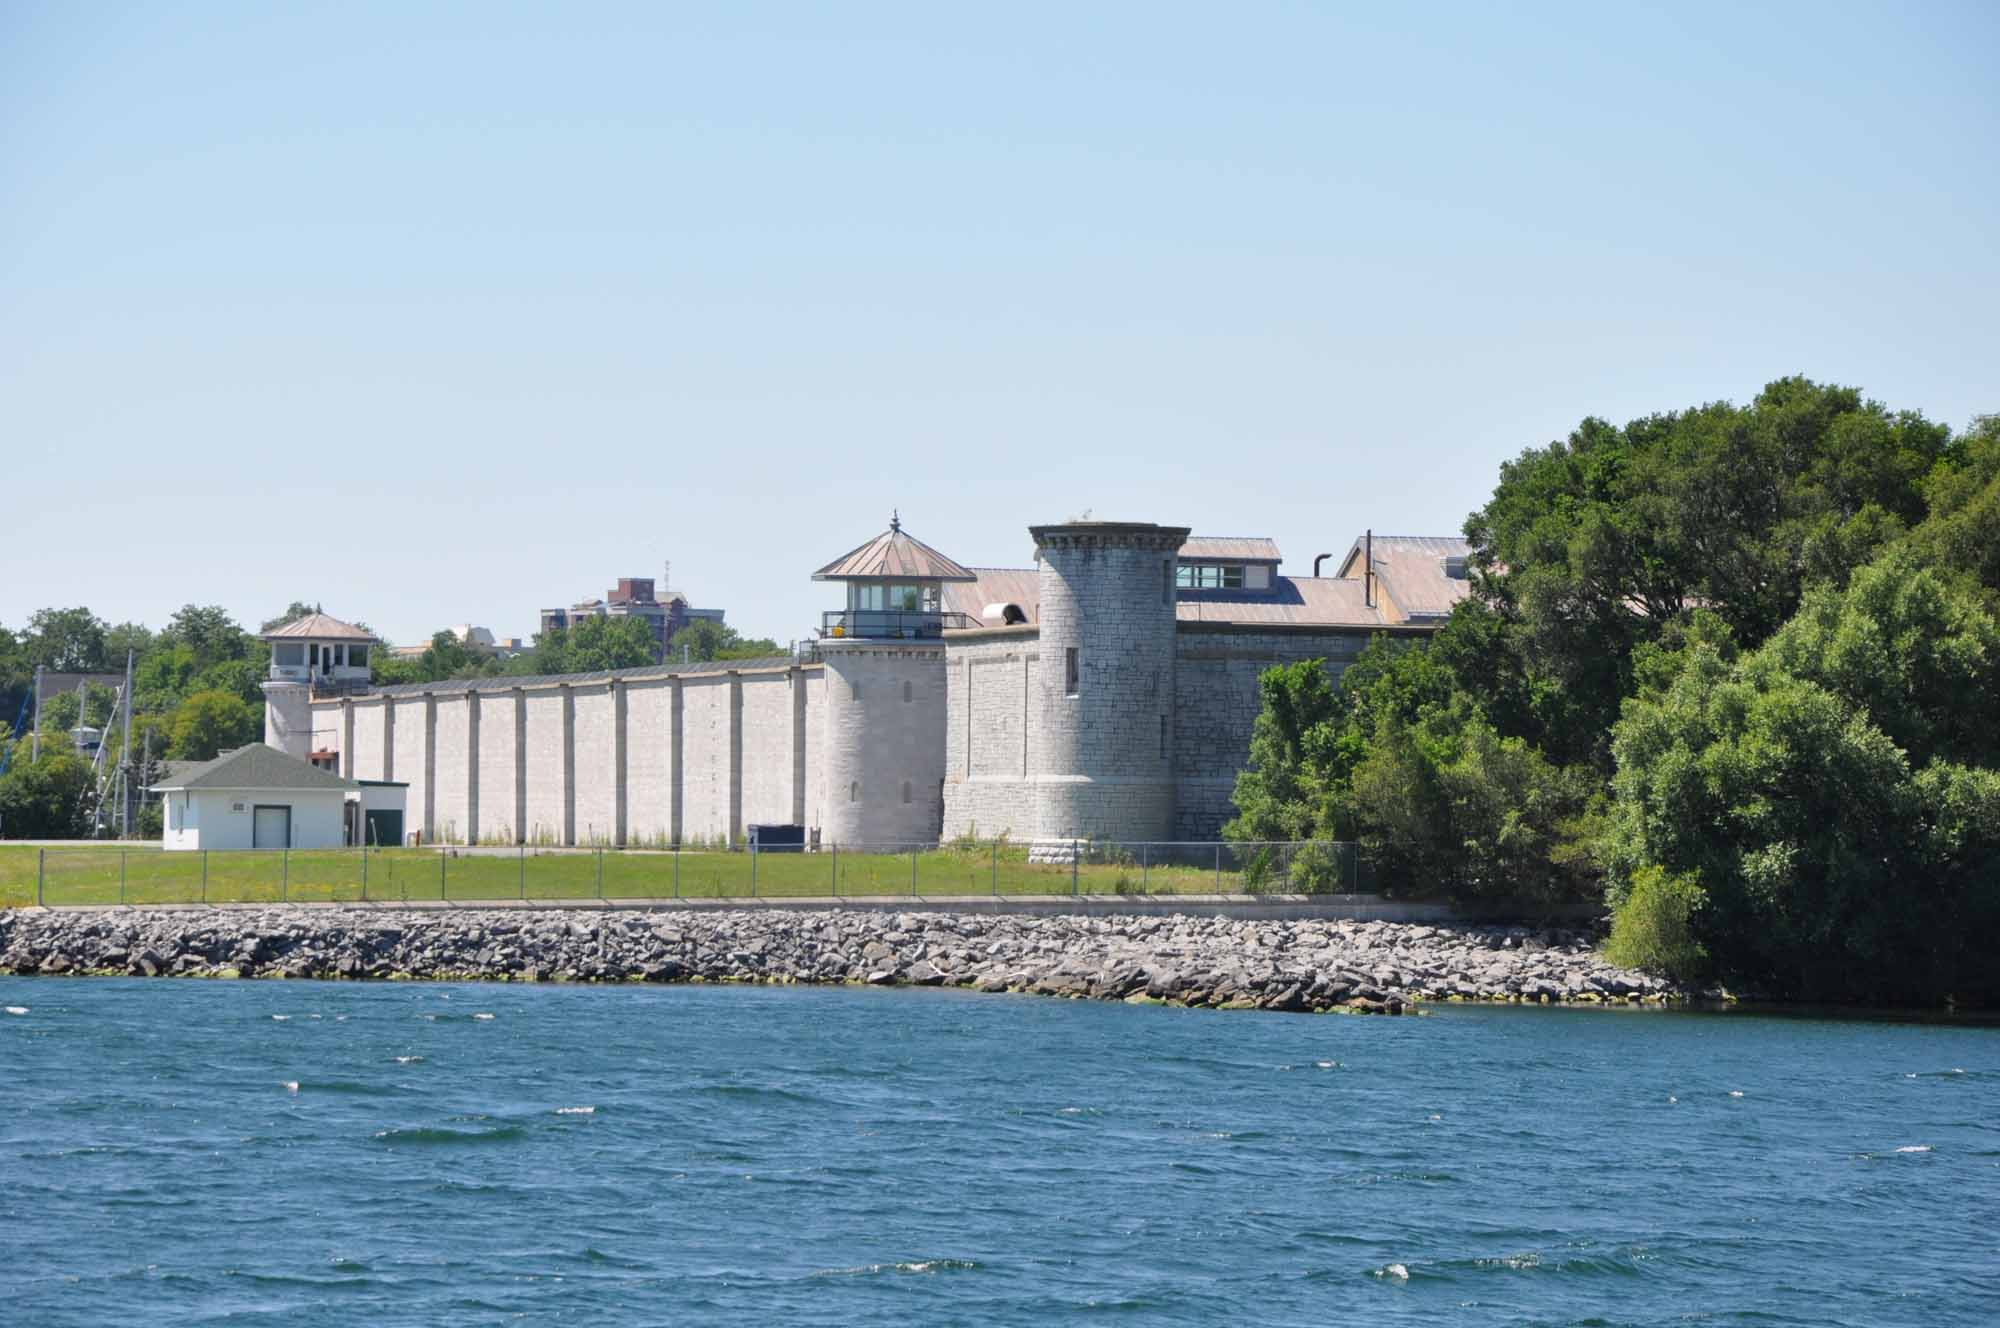 Kingston Penitentiary in Ontario